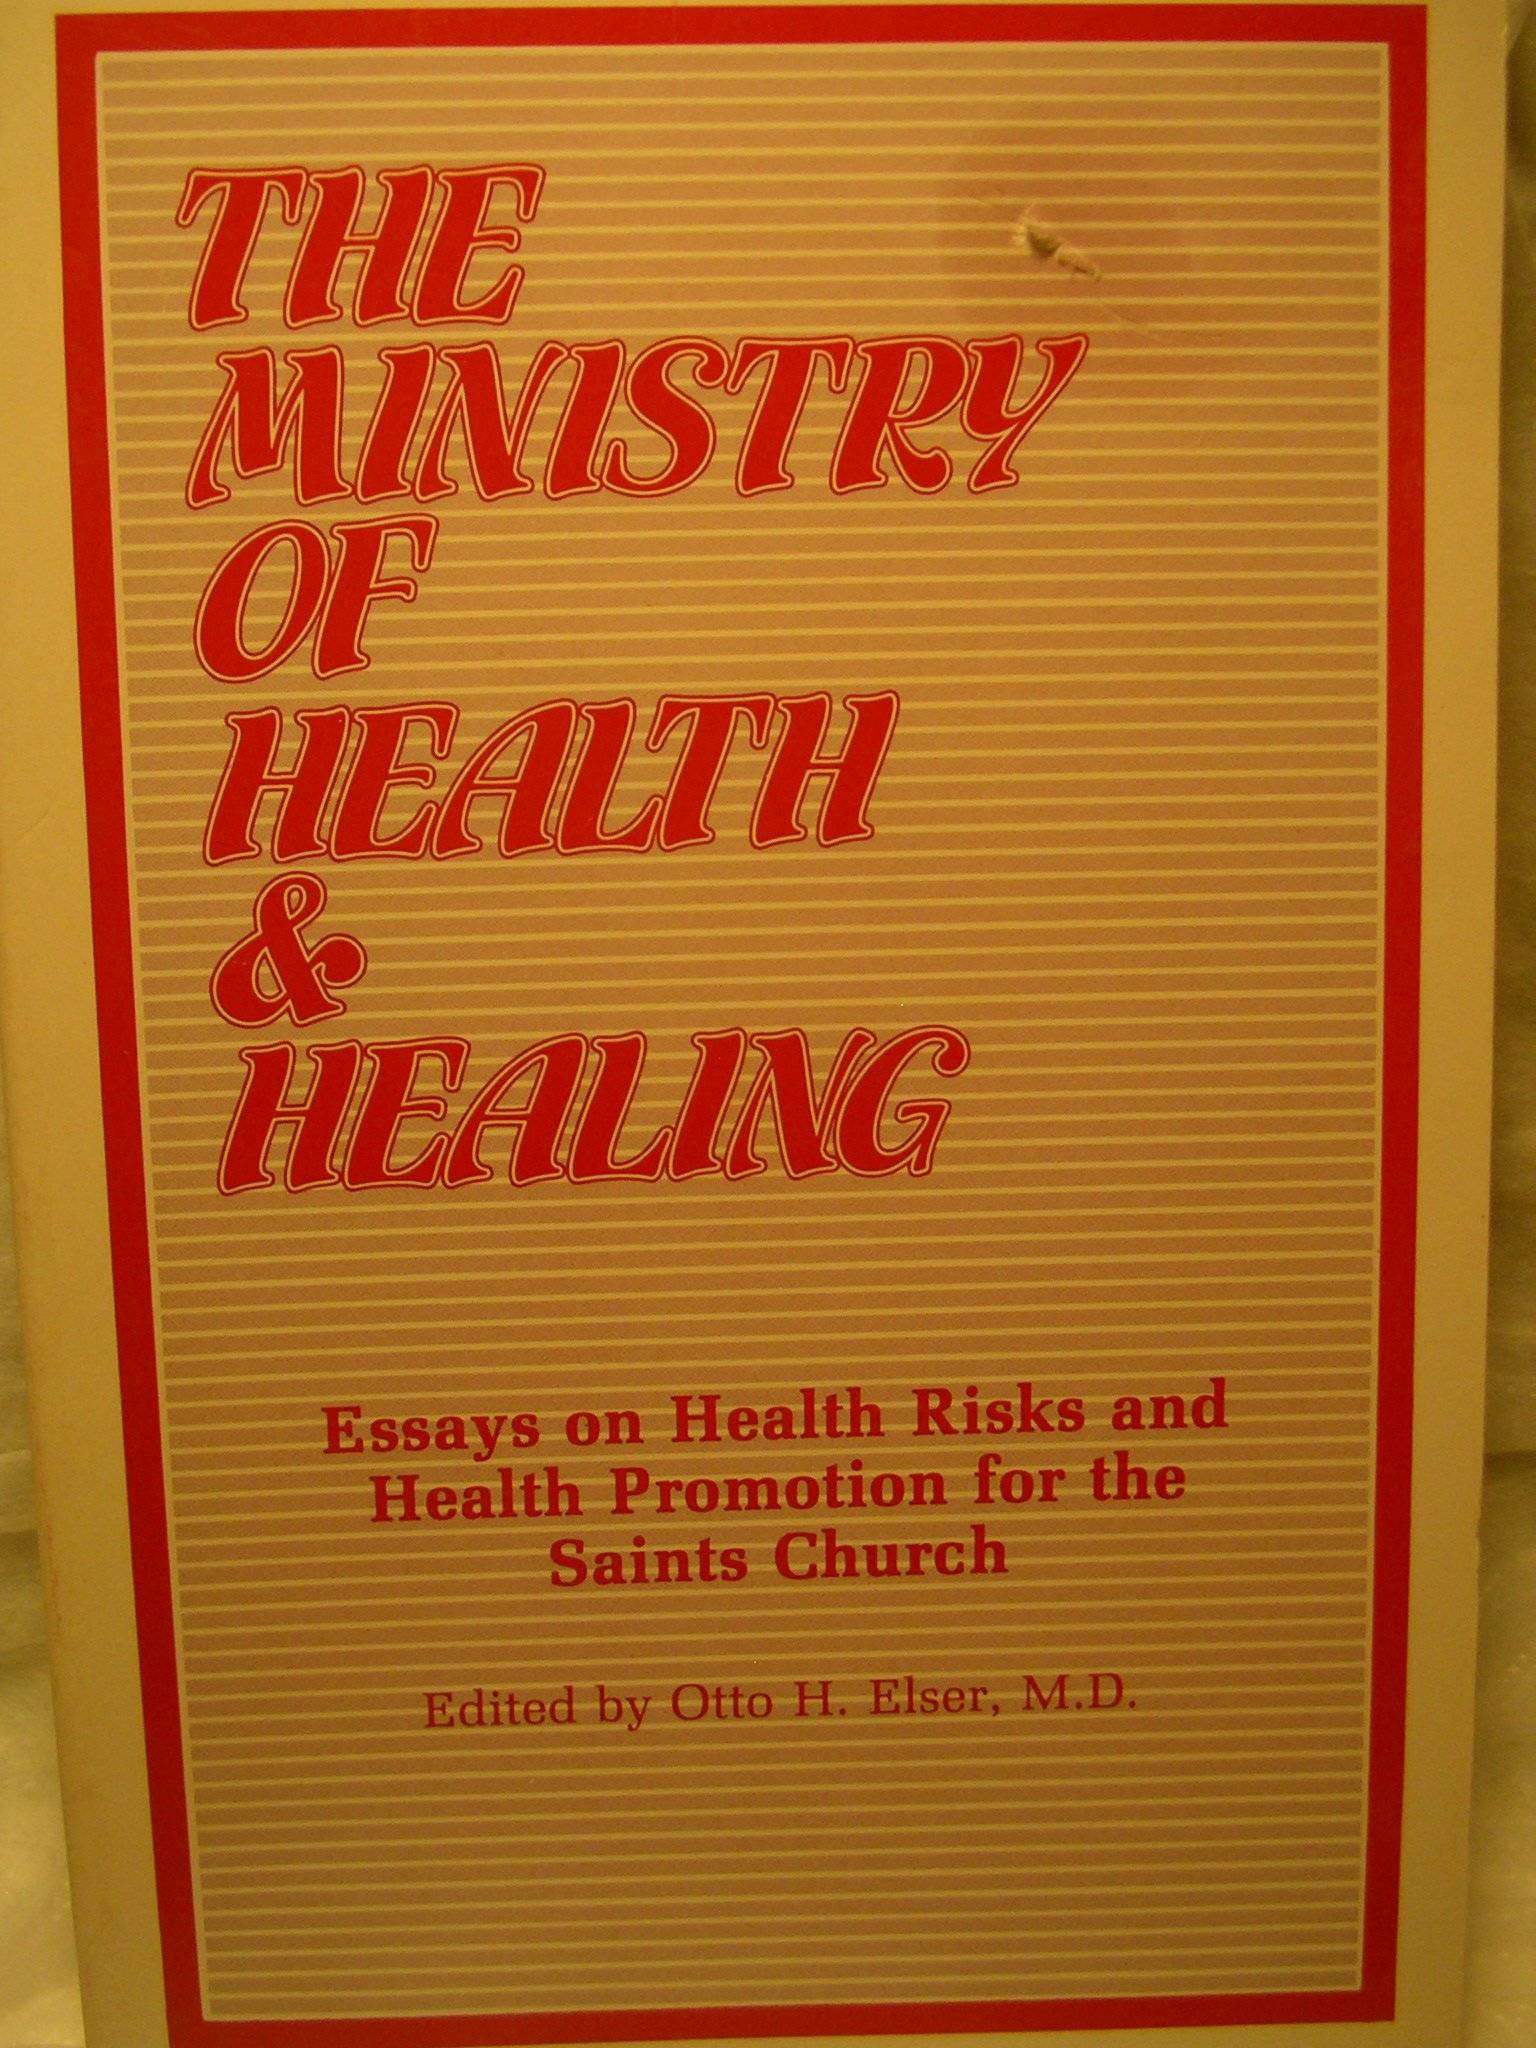 the ministry of health  healing essays on health risks and health  the ministry of health  healing essays on health risks and health  promotion for the saints church paperback  june